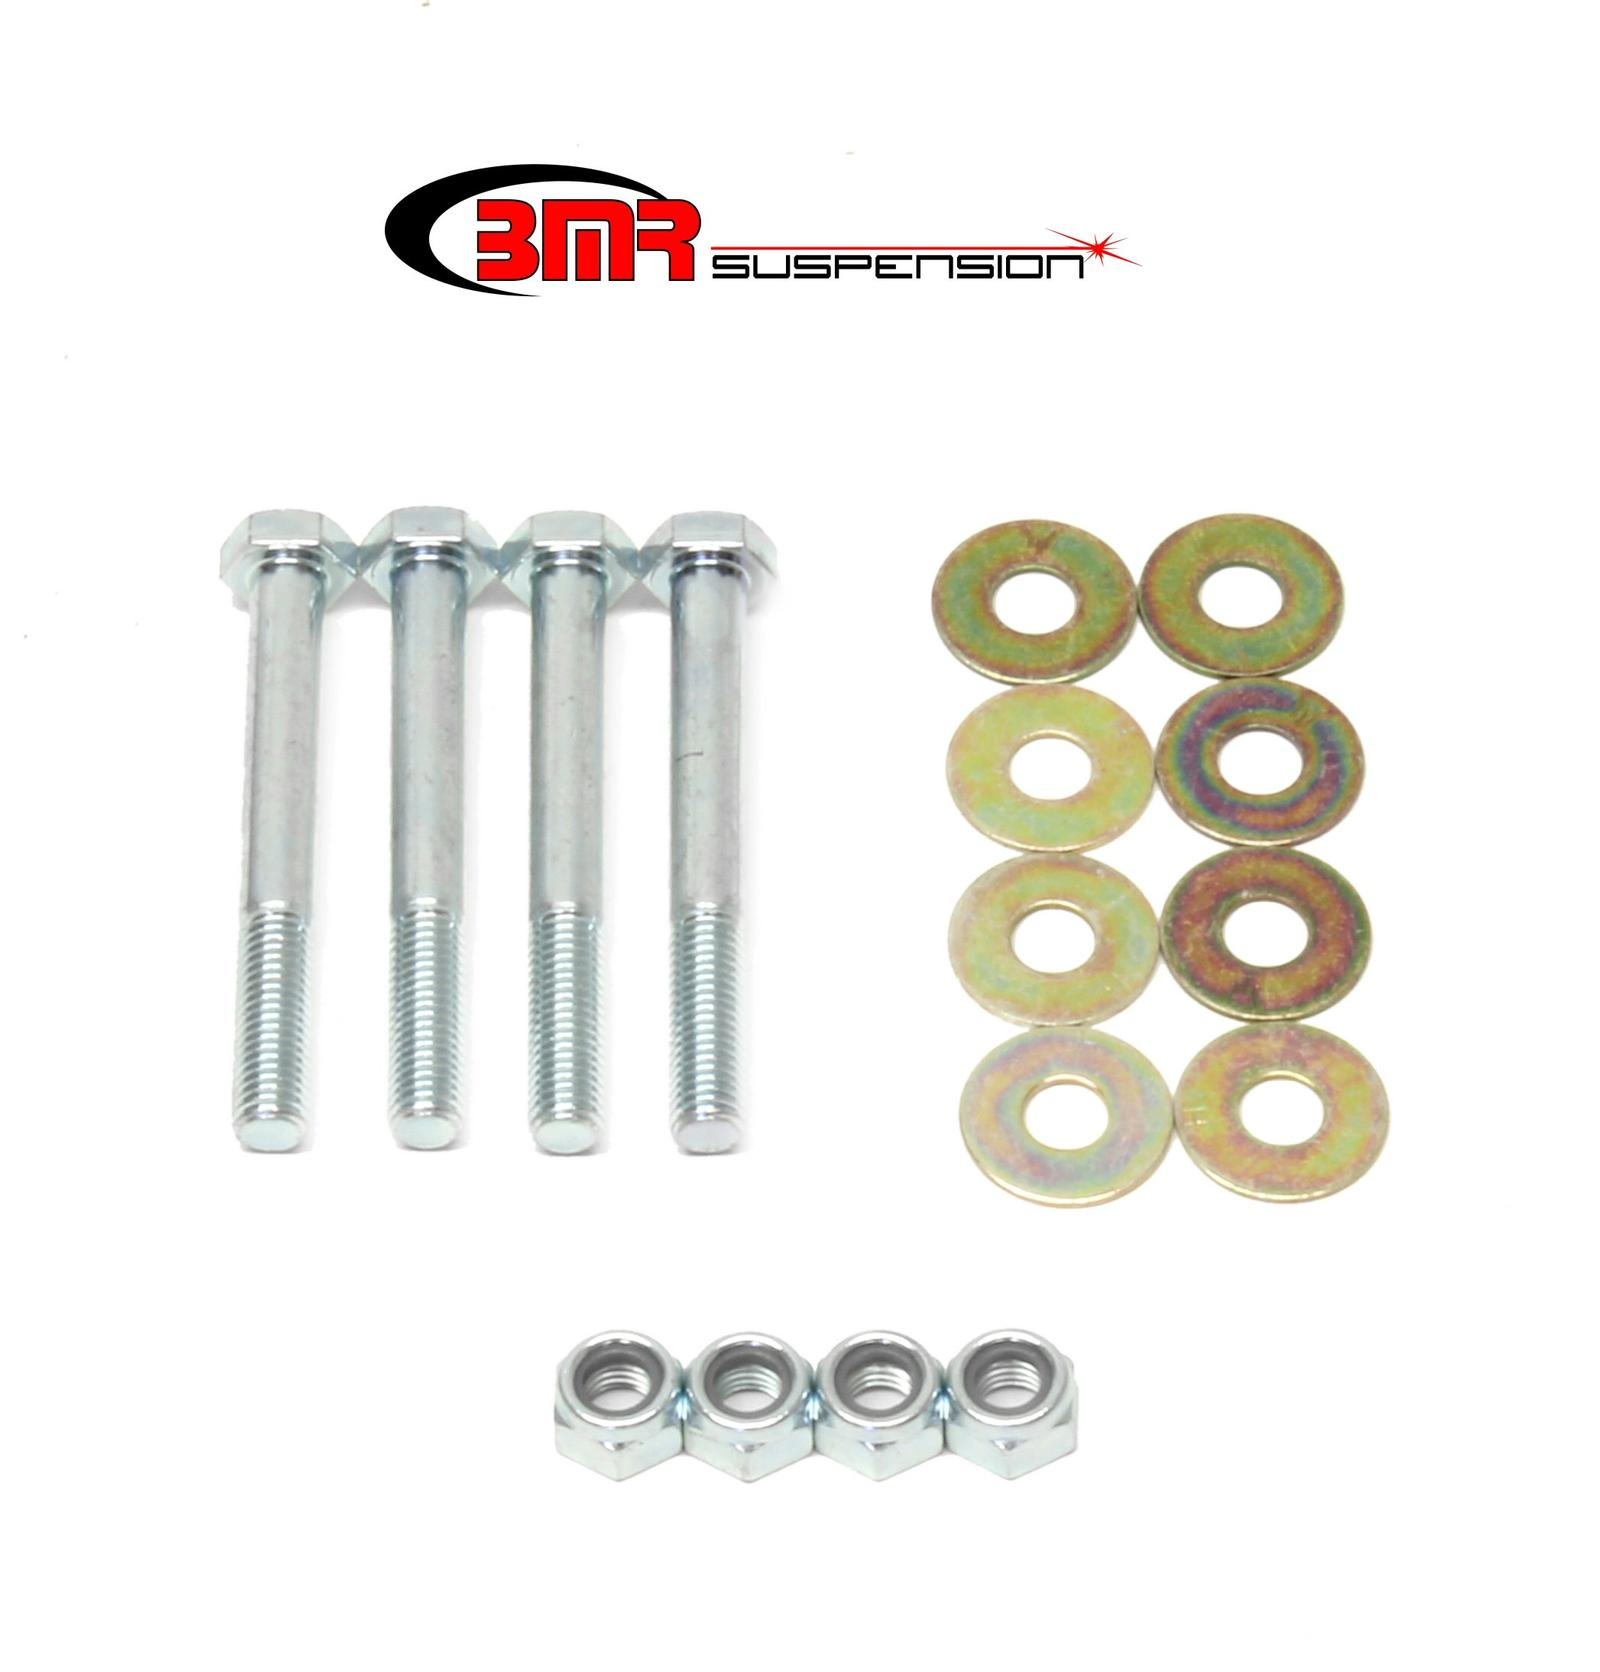 82-02 Fbody BMR Suspension Rear Lower Control Arm Harware Kit